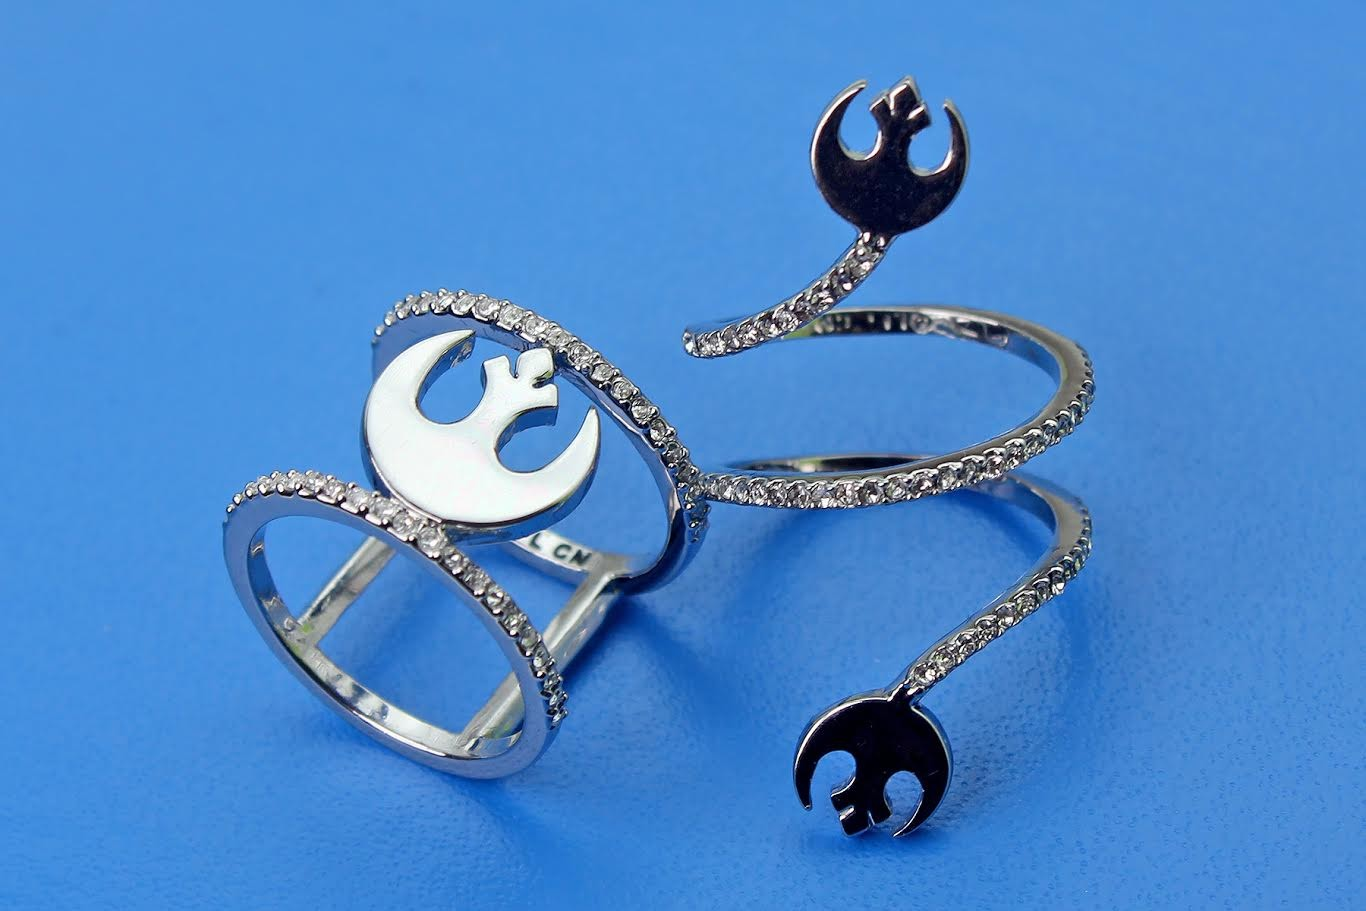 Review – 'Bling' Rebel symbol rings